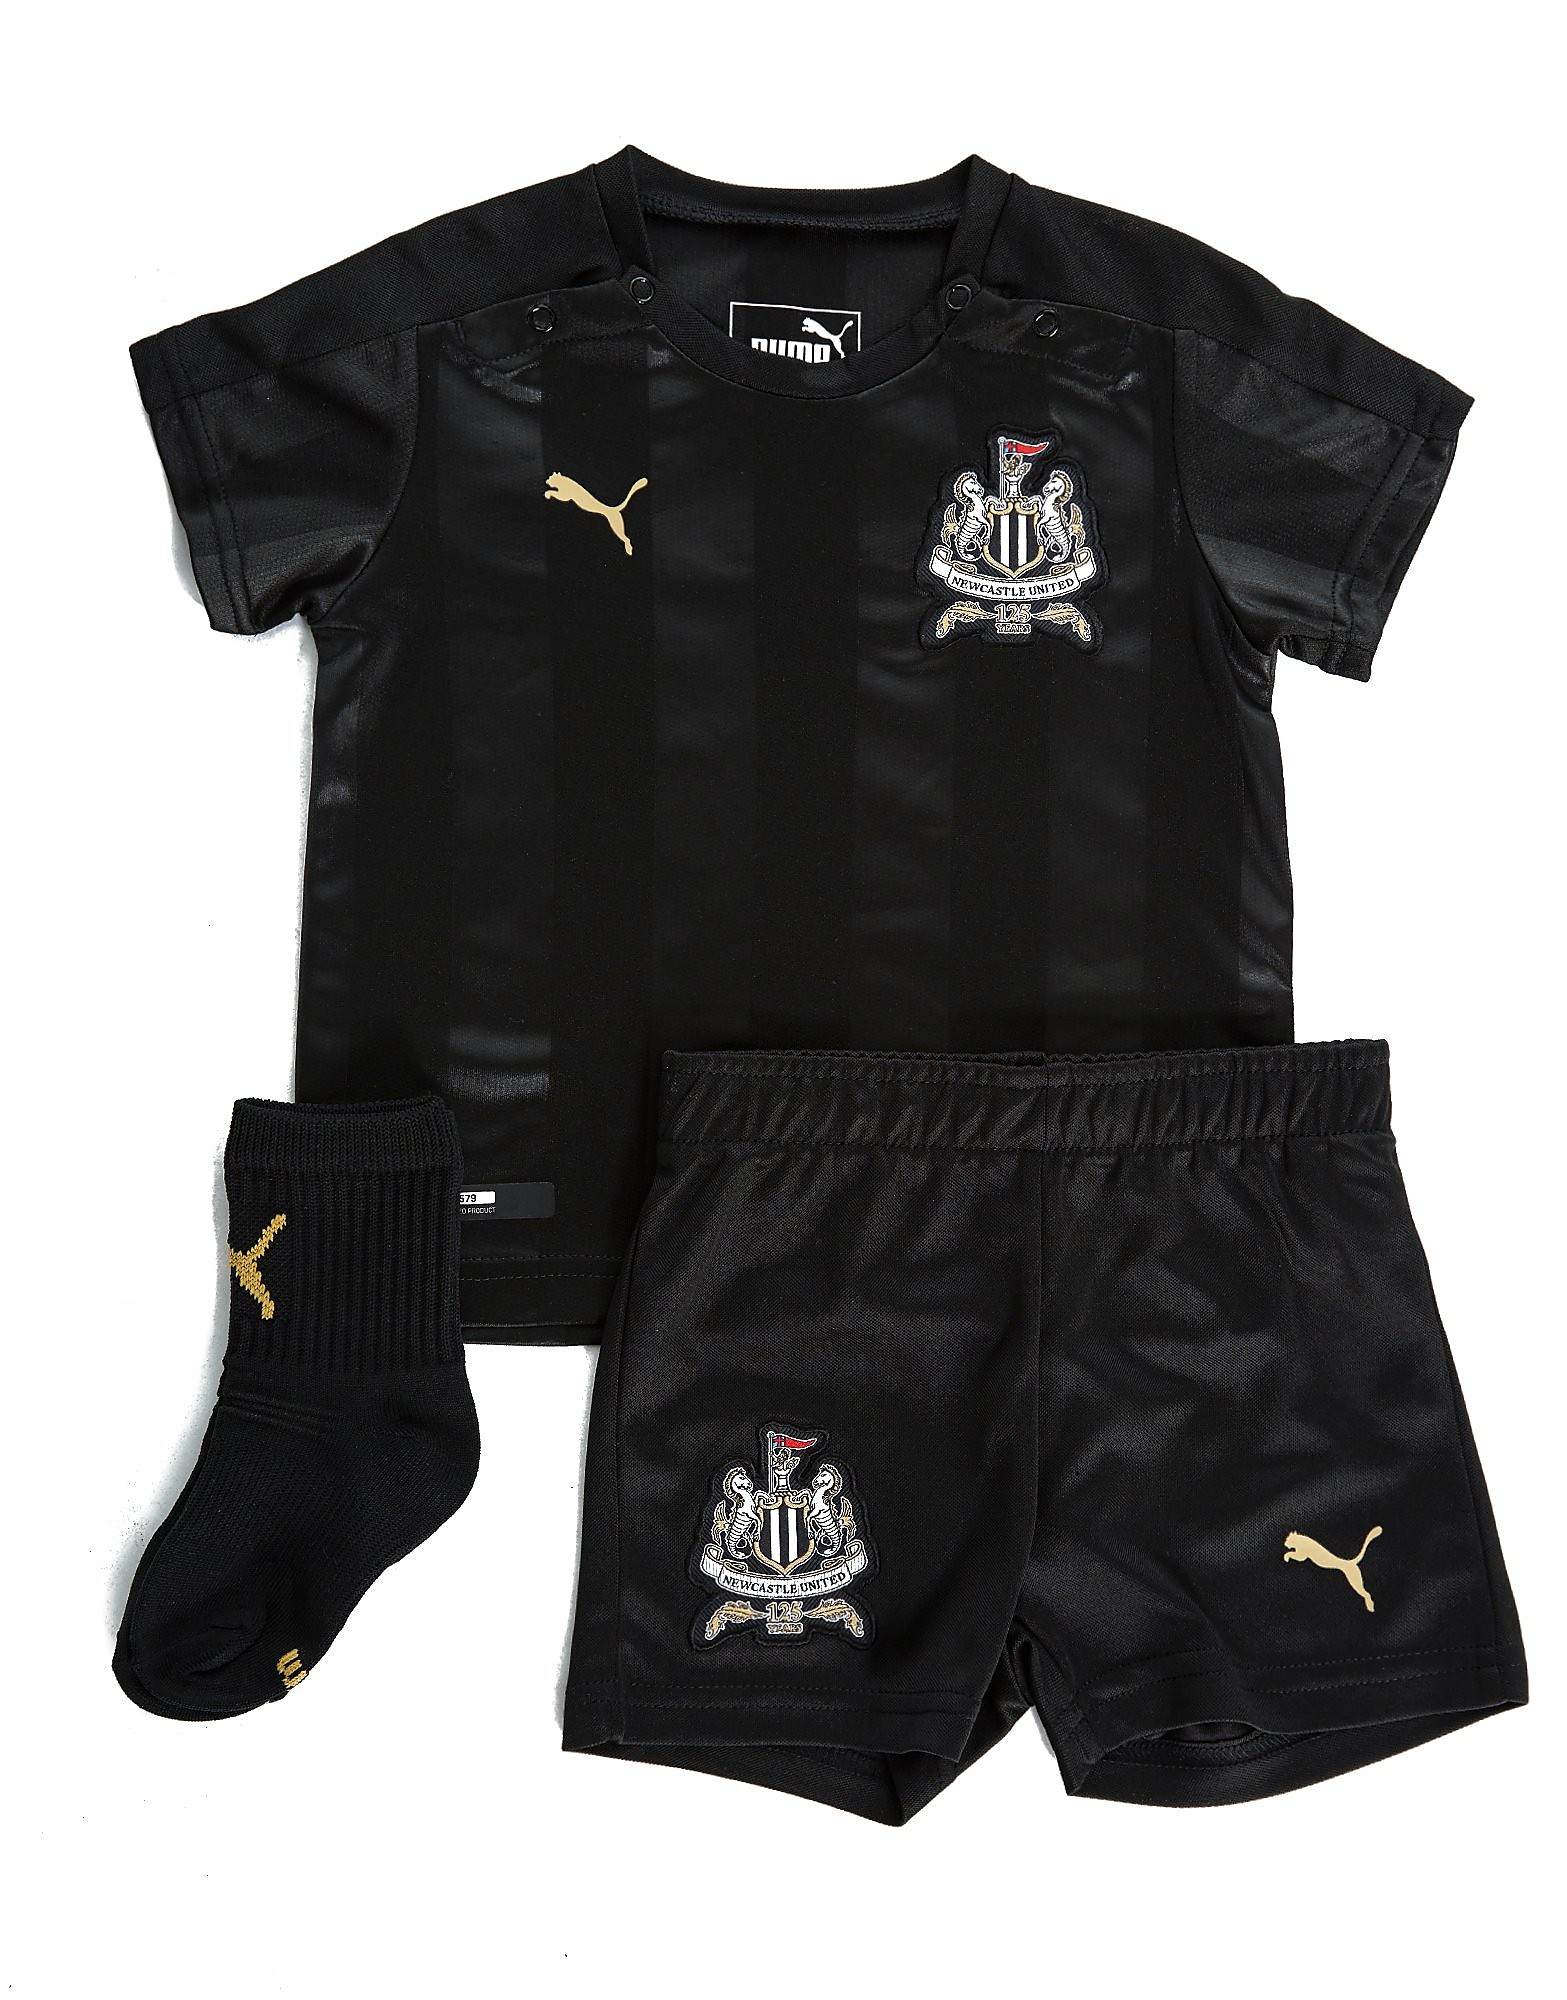 PUMA Newcastle United 2017/18 Third Kit Baby's